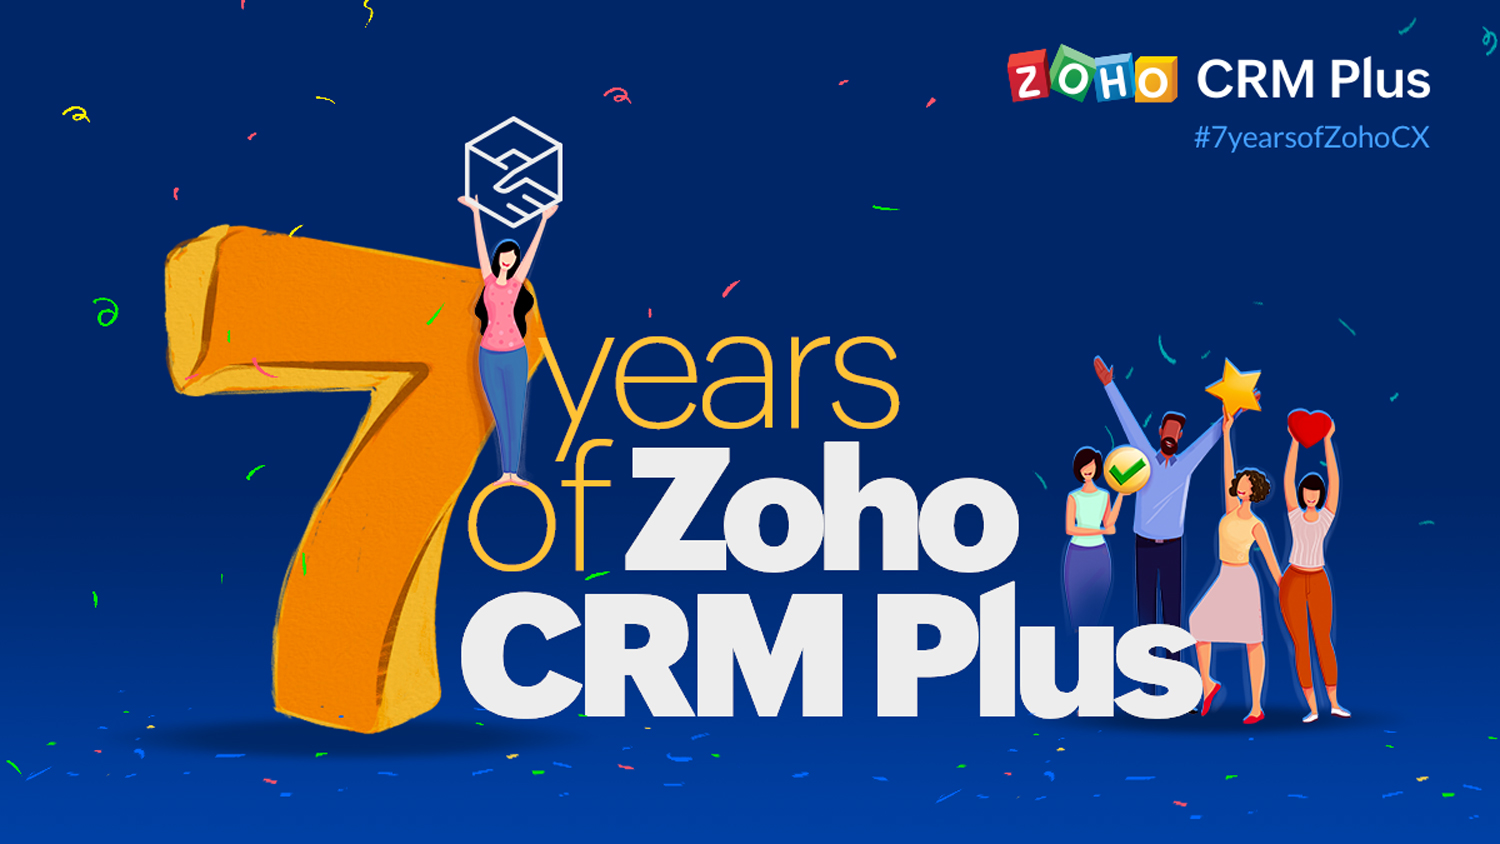 7 Years of Zoho CRM Plus